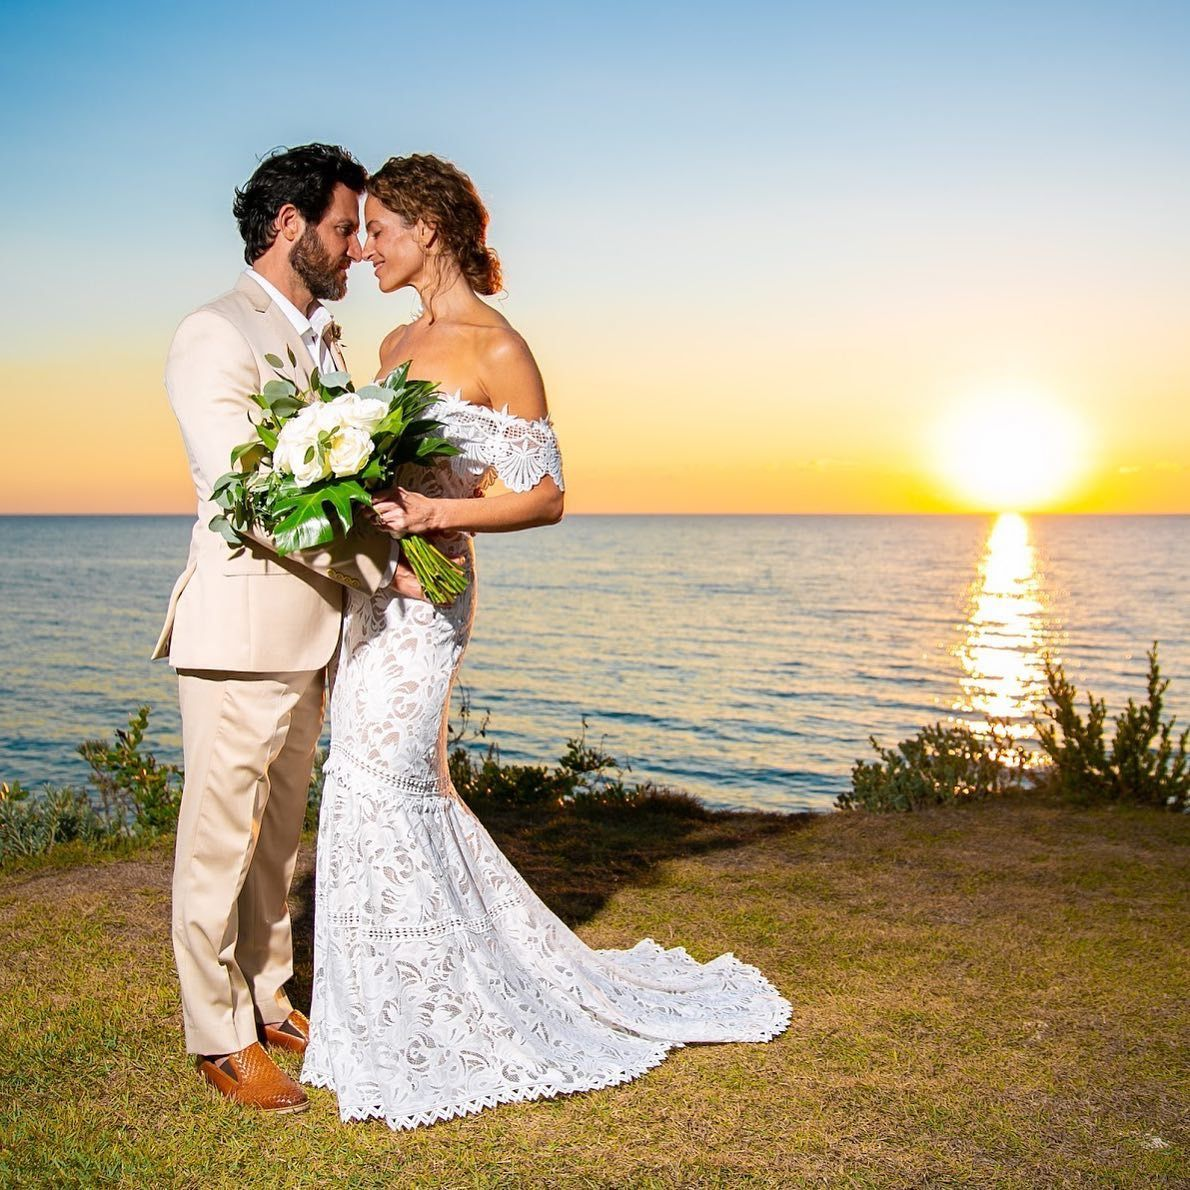 Beautiful Sunset Elopement Wedding In 2020 Elope Wedding Caribbean Wedding Bahamas Wedding